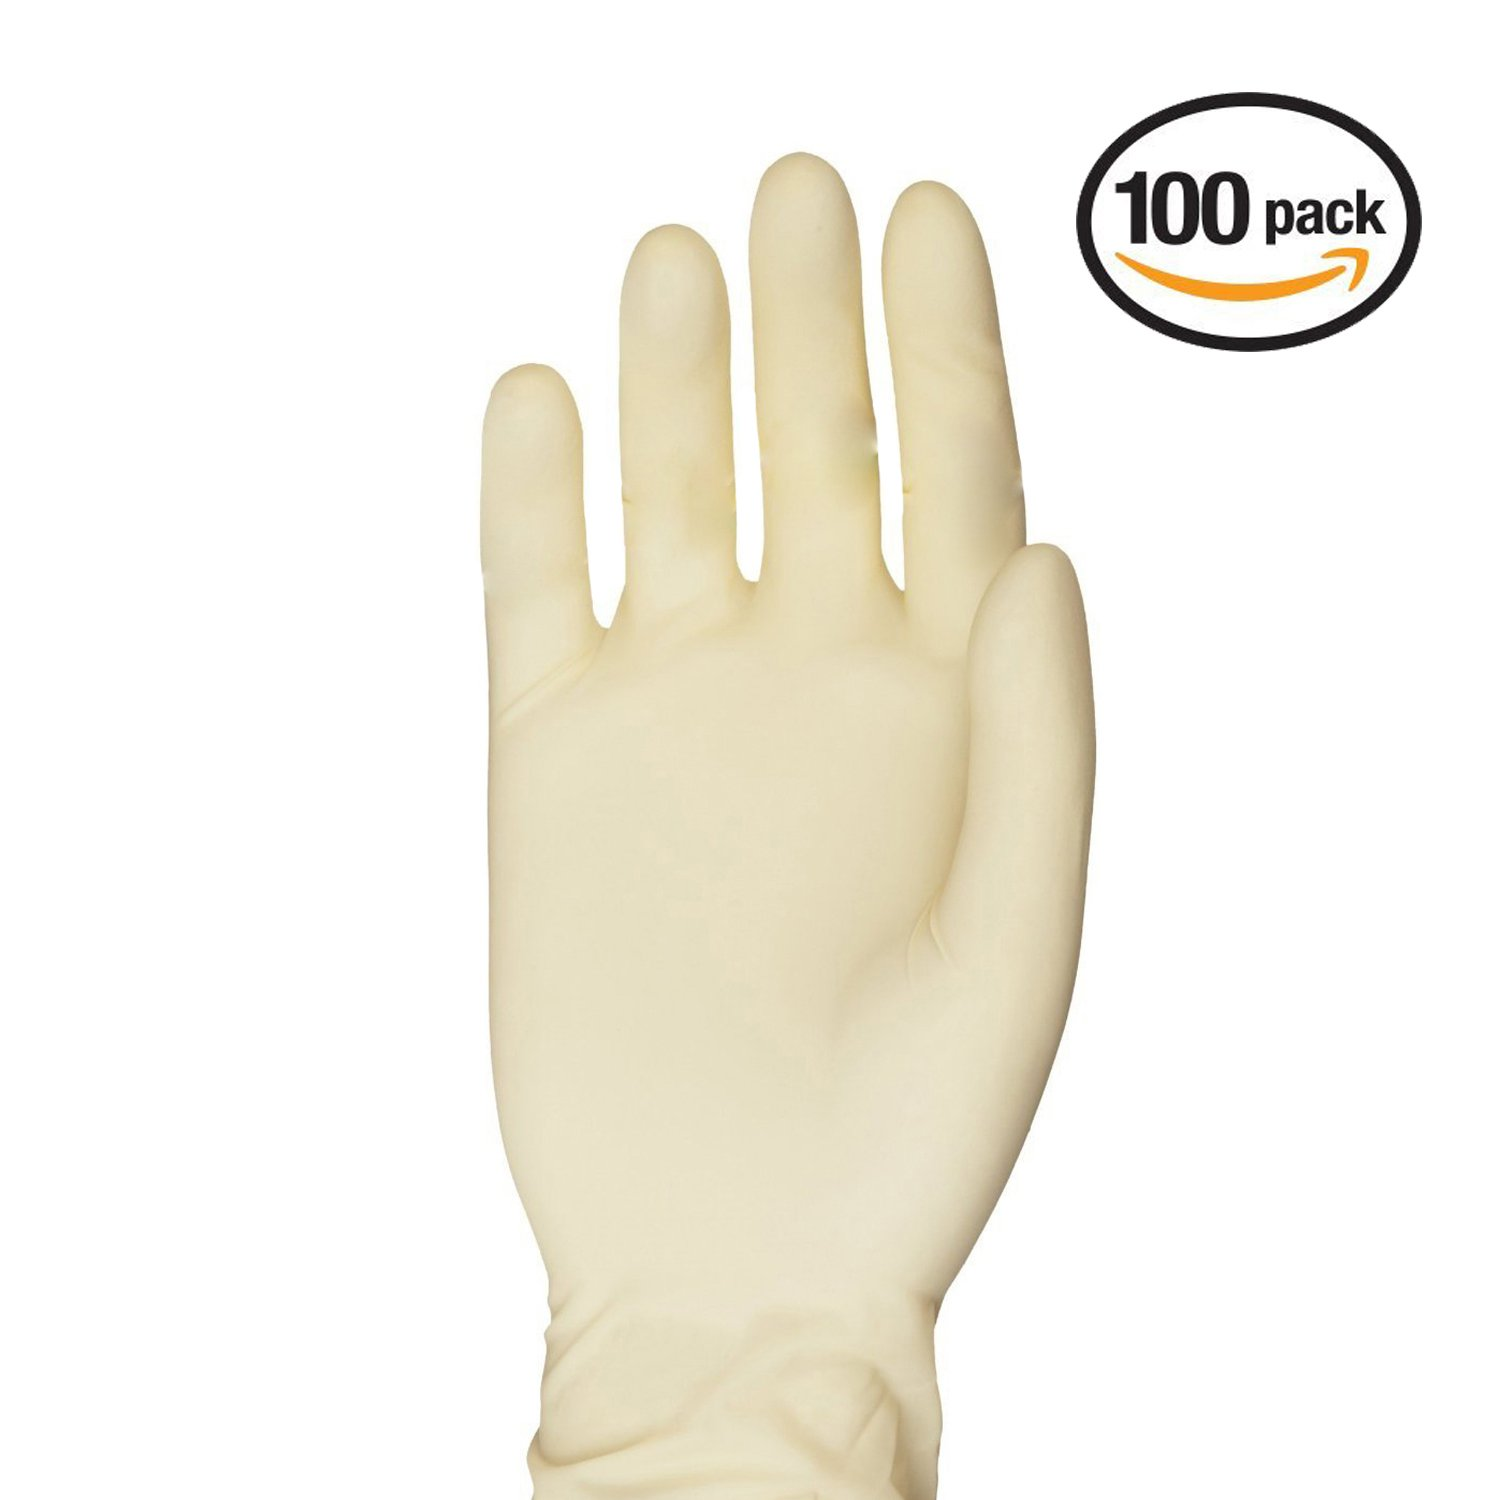 VIVID NuTouch Textured Premium Quality Latex Exam Gloves – Ambidextrous, Powder Free – Double Chlorinated – For Crafting, Medical Use, Home DIY, Pet Care, Box of 100, Size Large, NuTouch